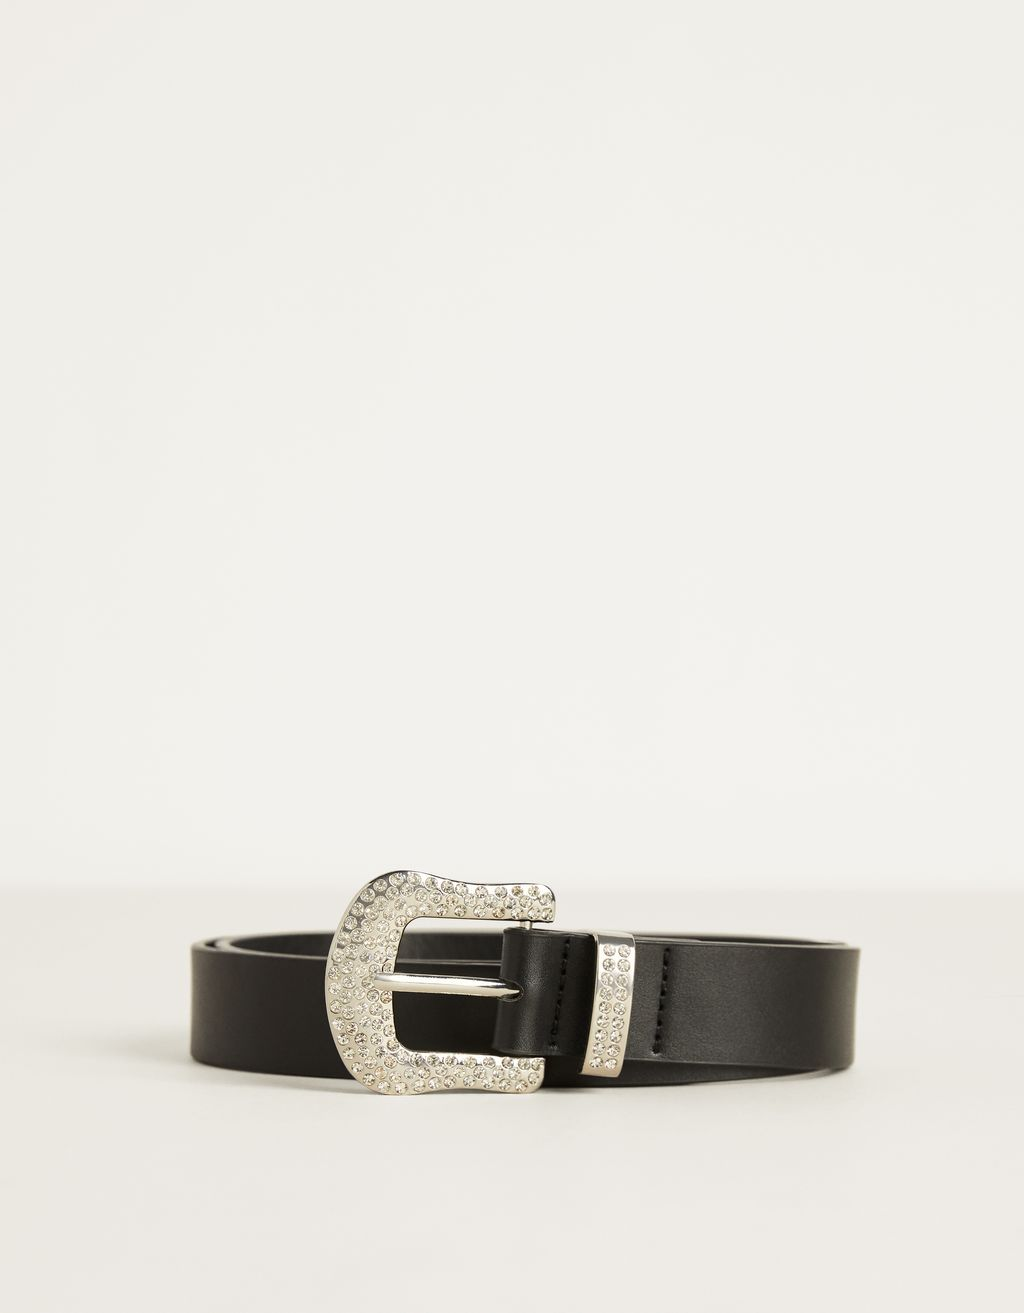 Belt with bejewelled buckle